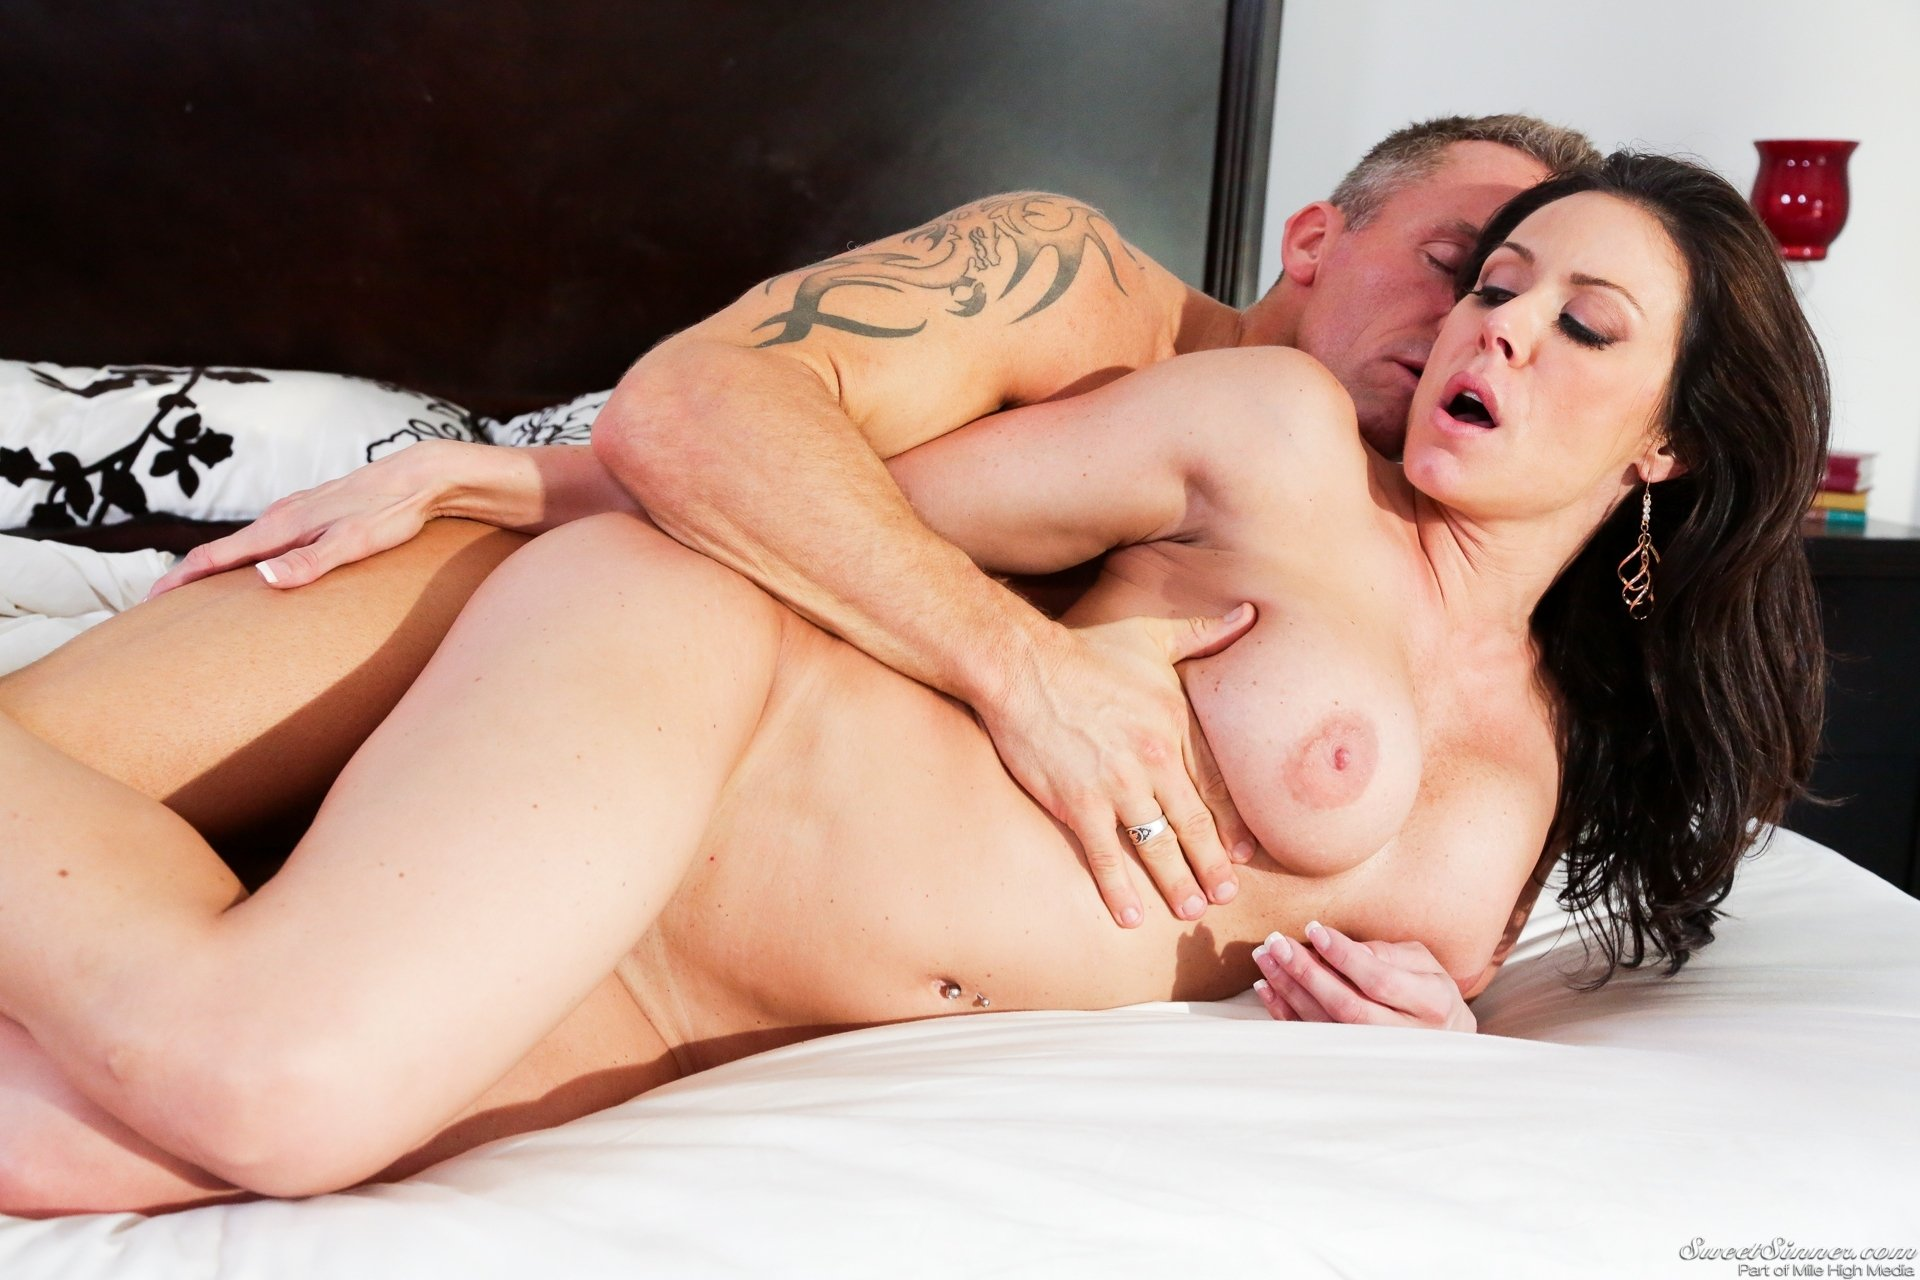 Myself and stream lusty porn cocks into